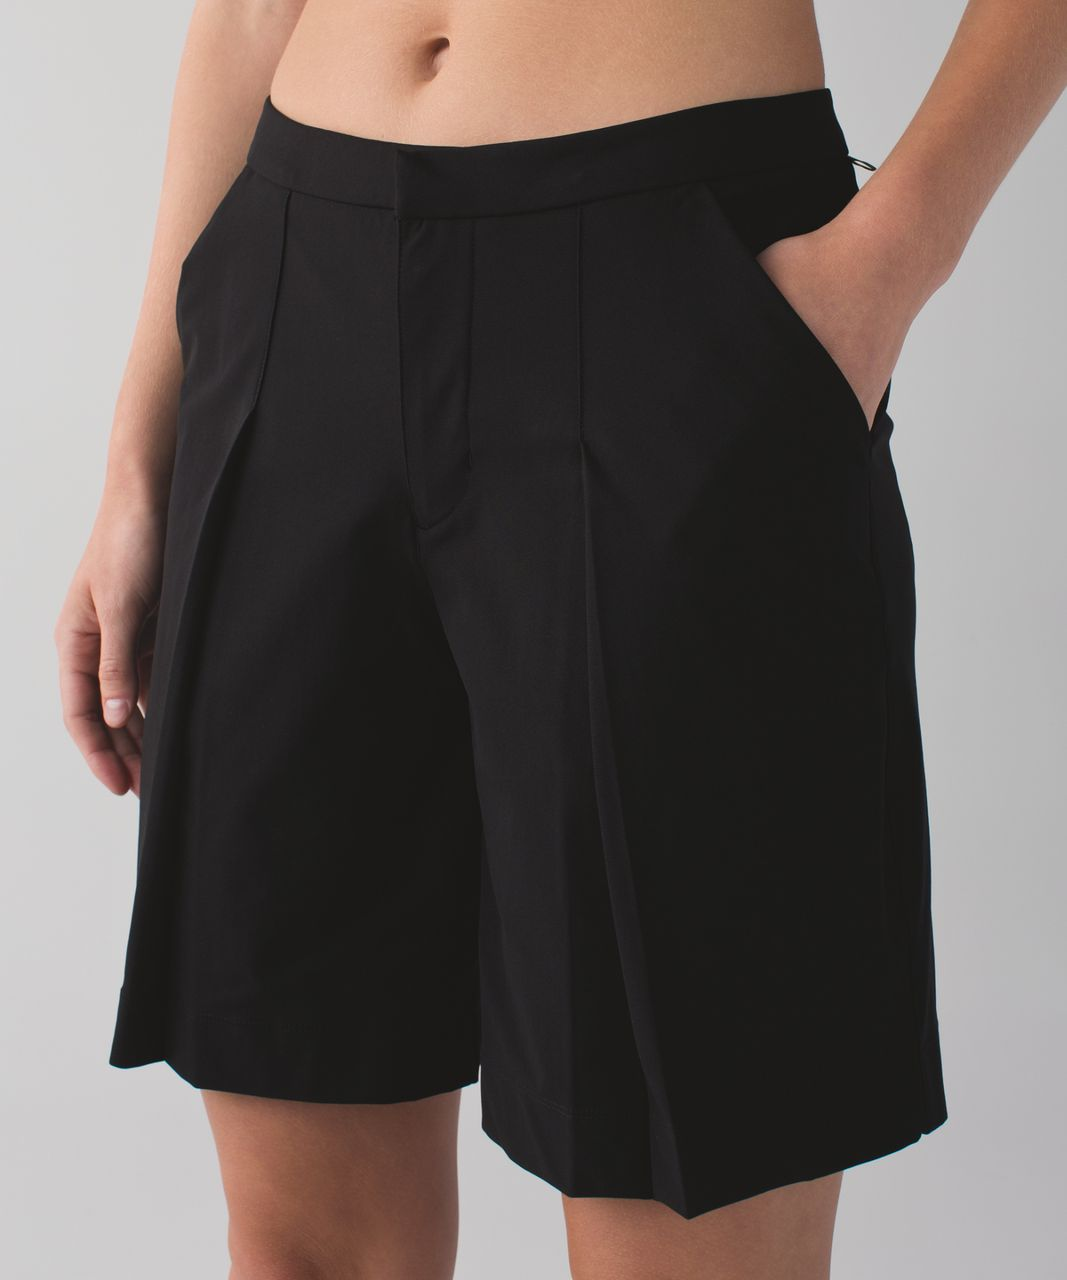 Lululemon Long Story Short - Black